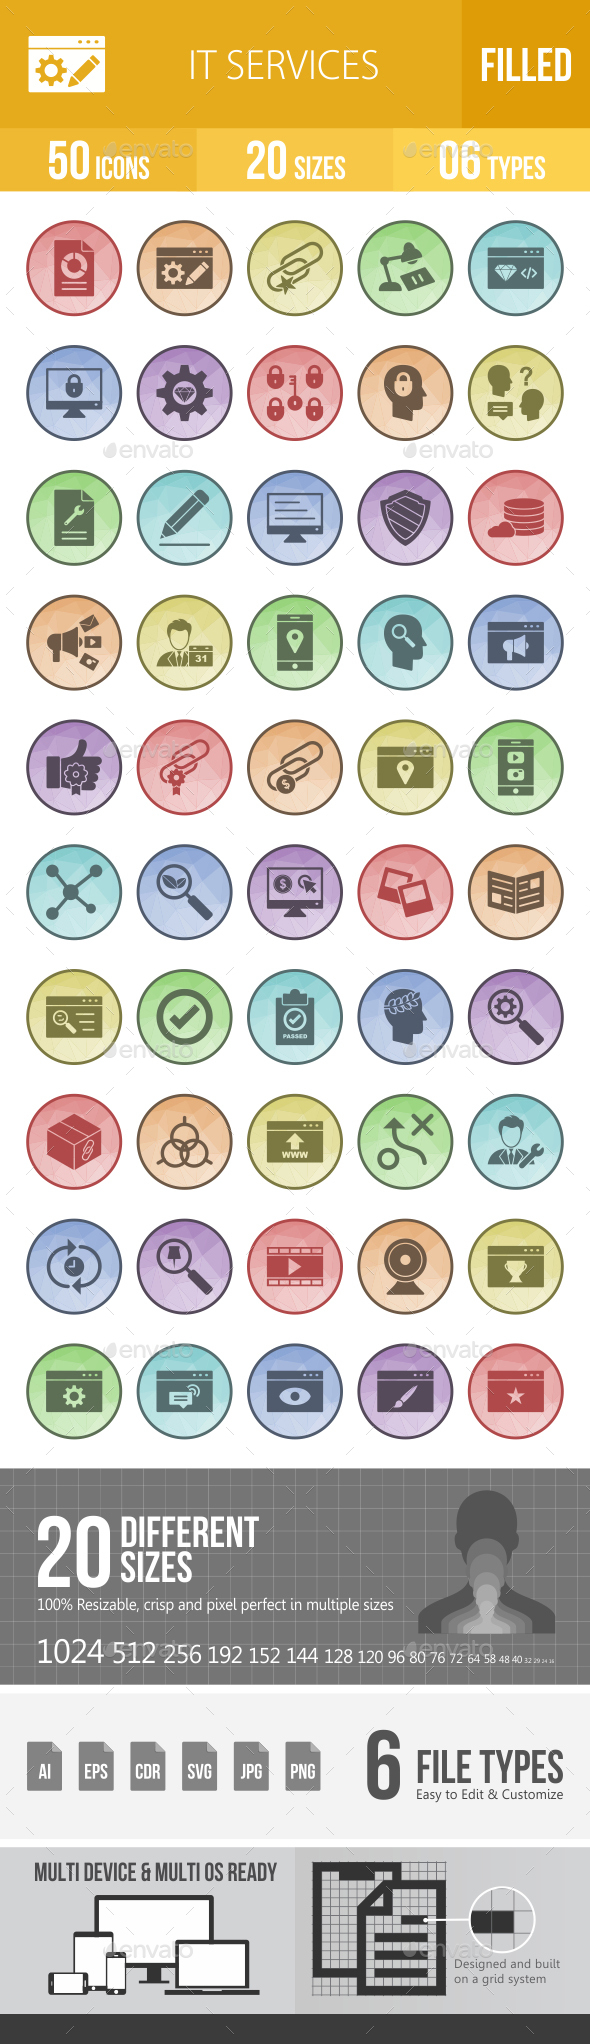 IT Services Filled Low Poly B/G Icons - Icons